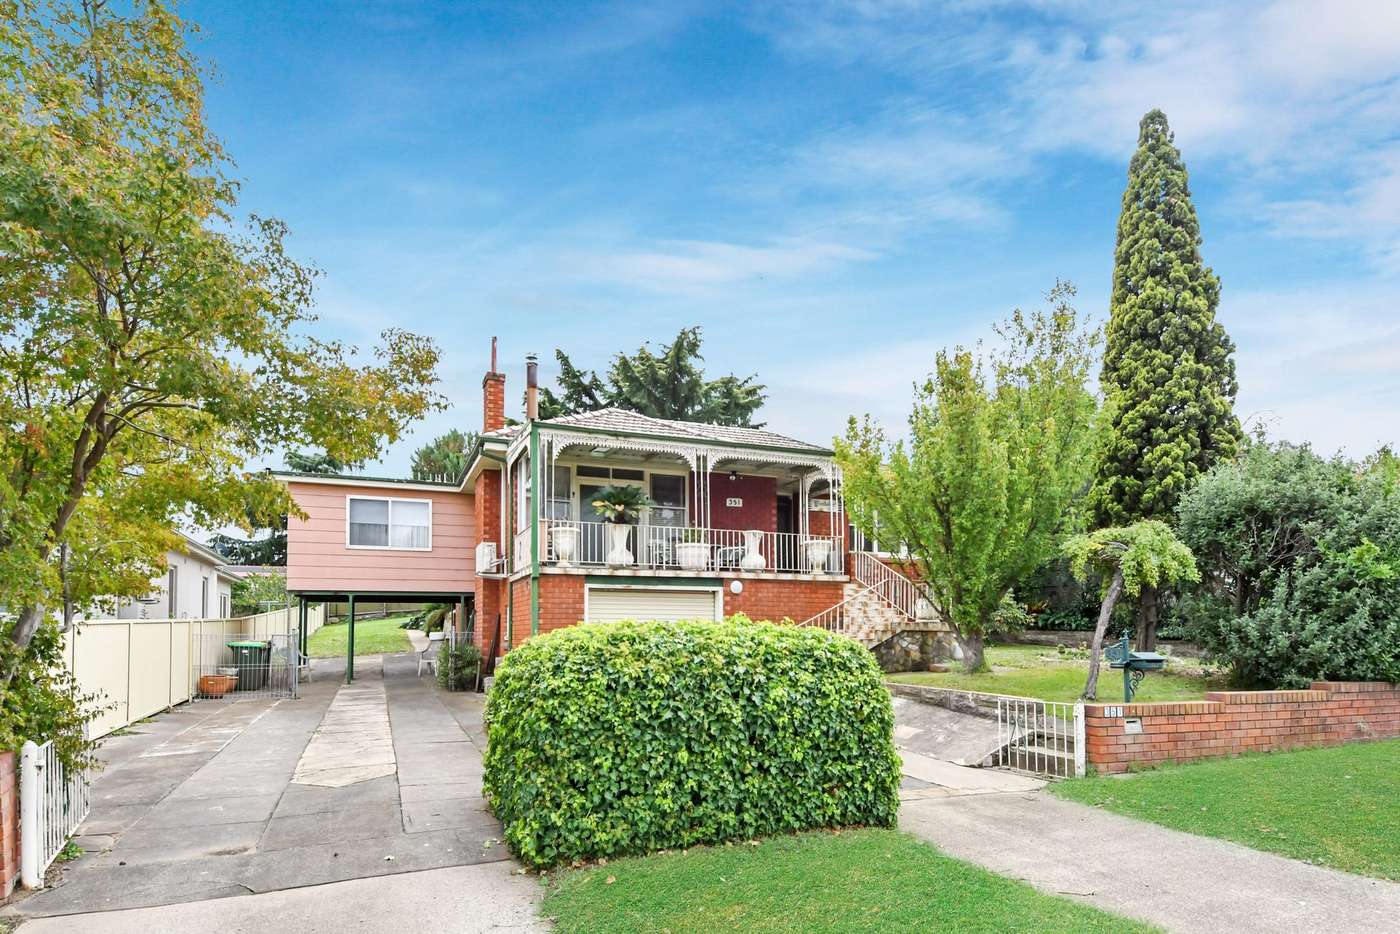 Main view of Homely house listing, 351 Stewart Street, Bathurst NSW 2795